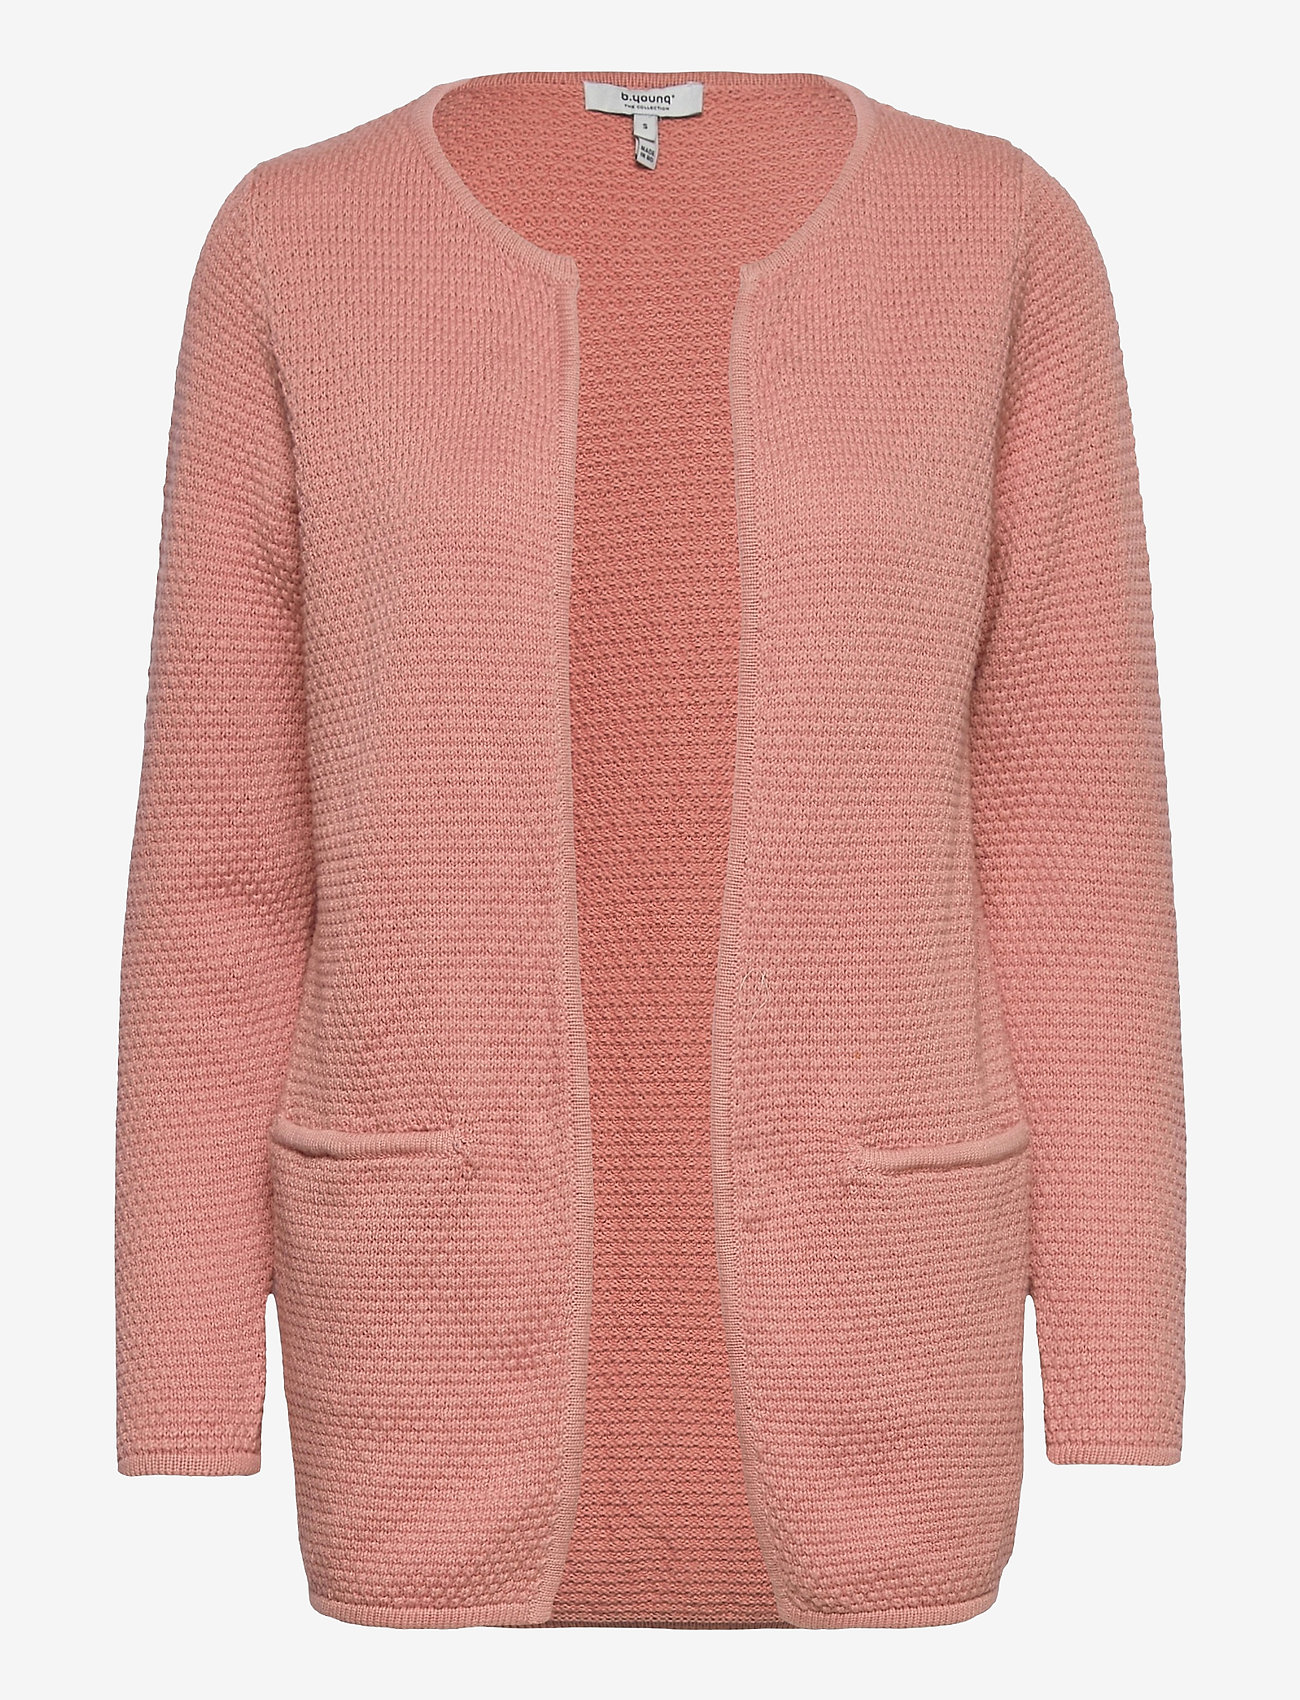 b.young - BYMIKALA STRUCTURE CARDIGAN - cardigans - rose tan - 0